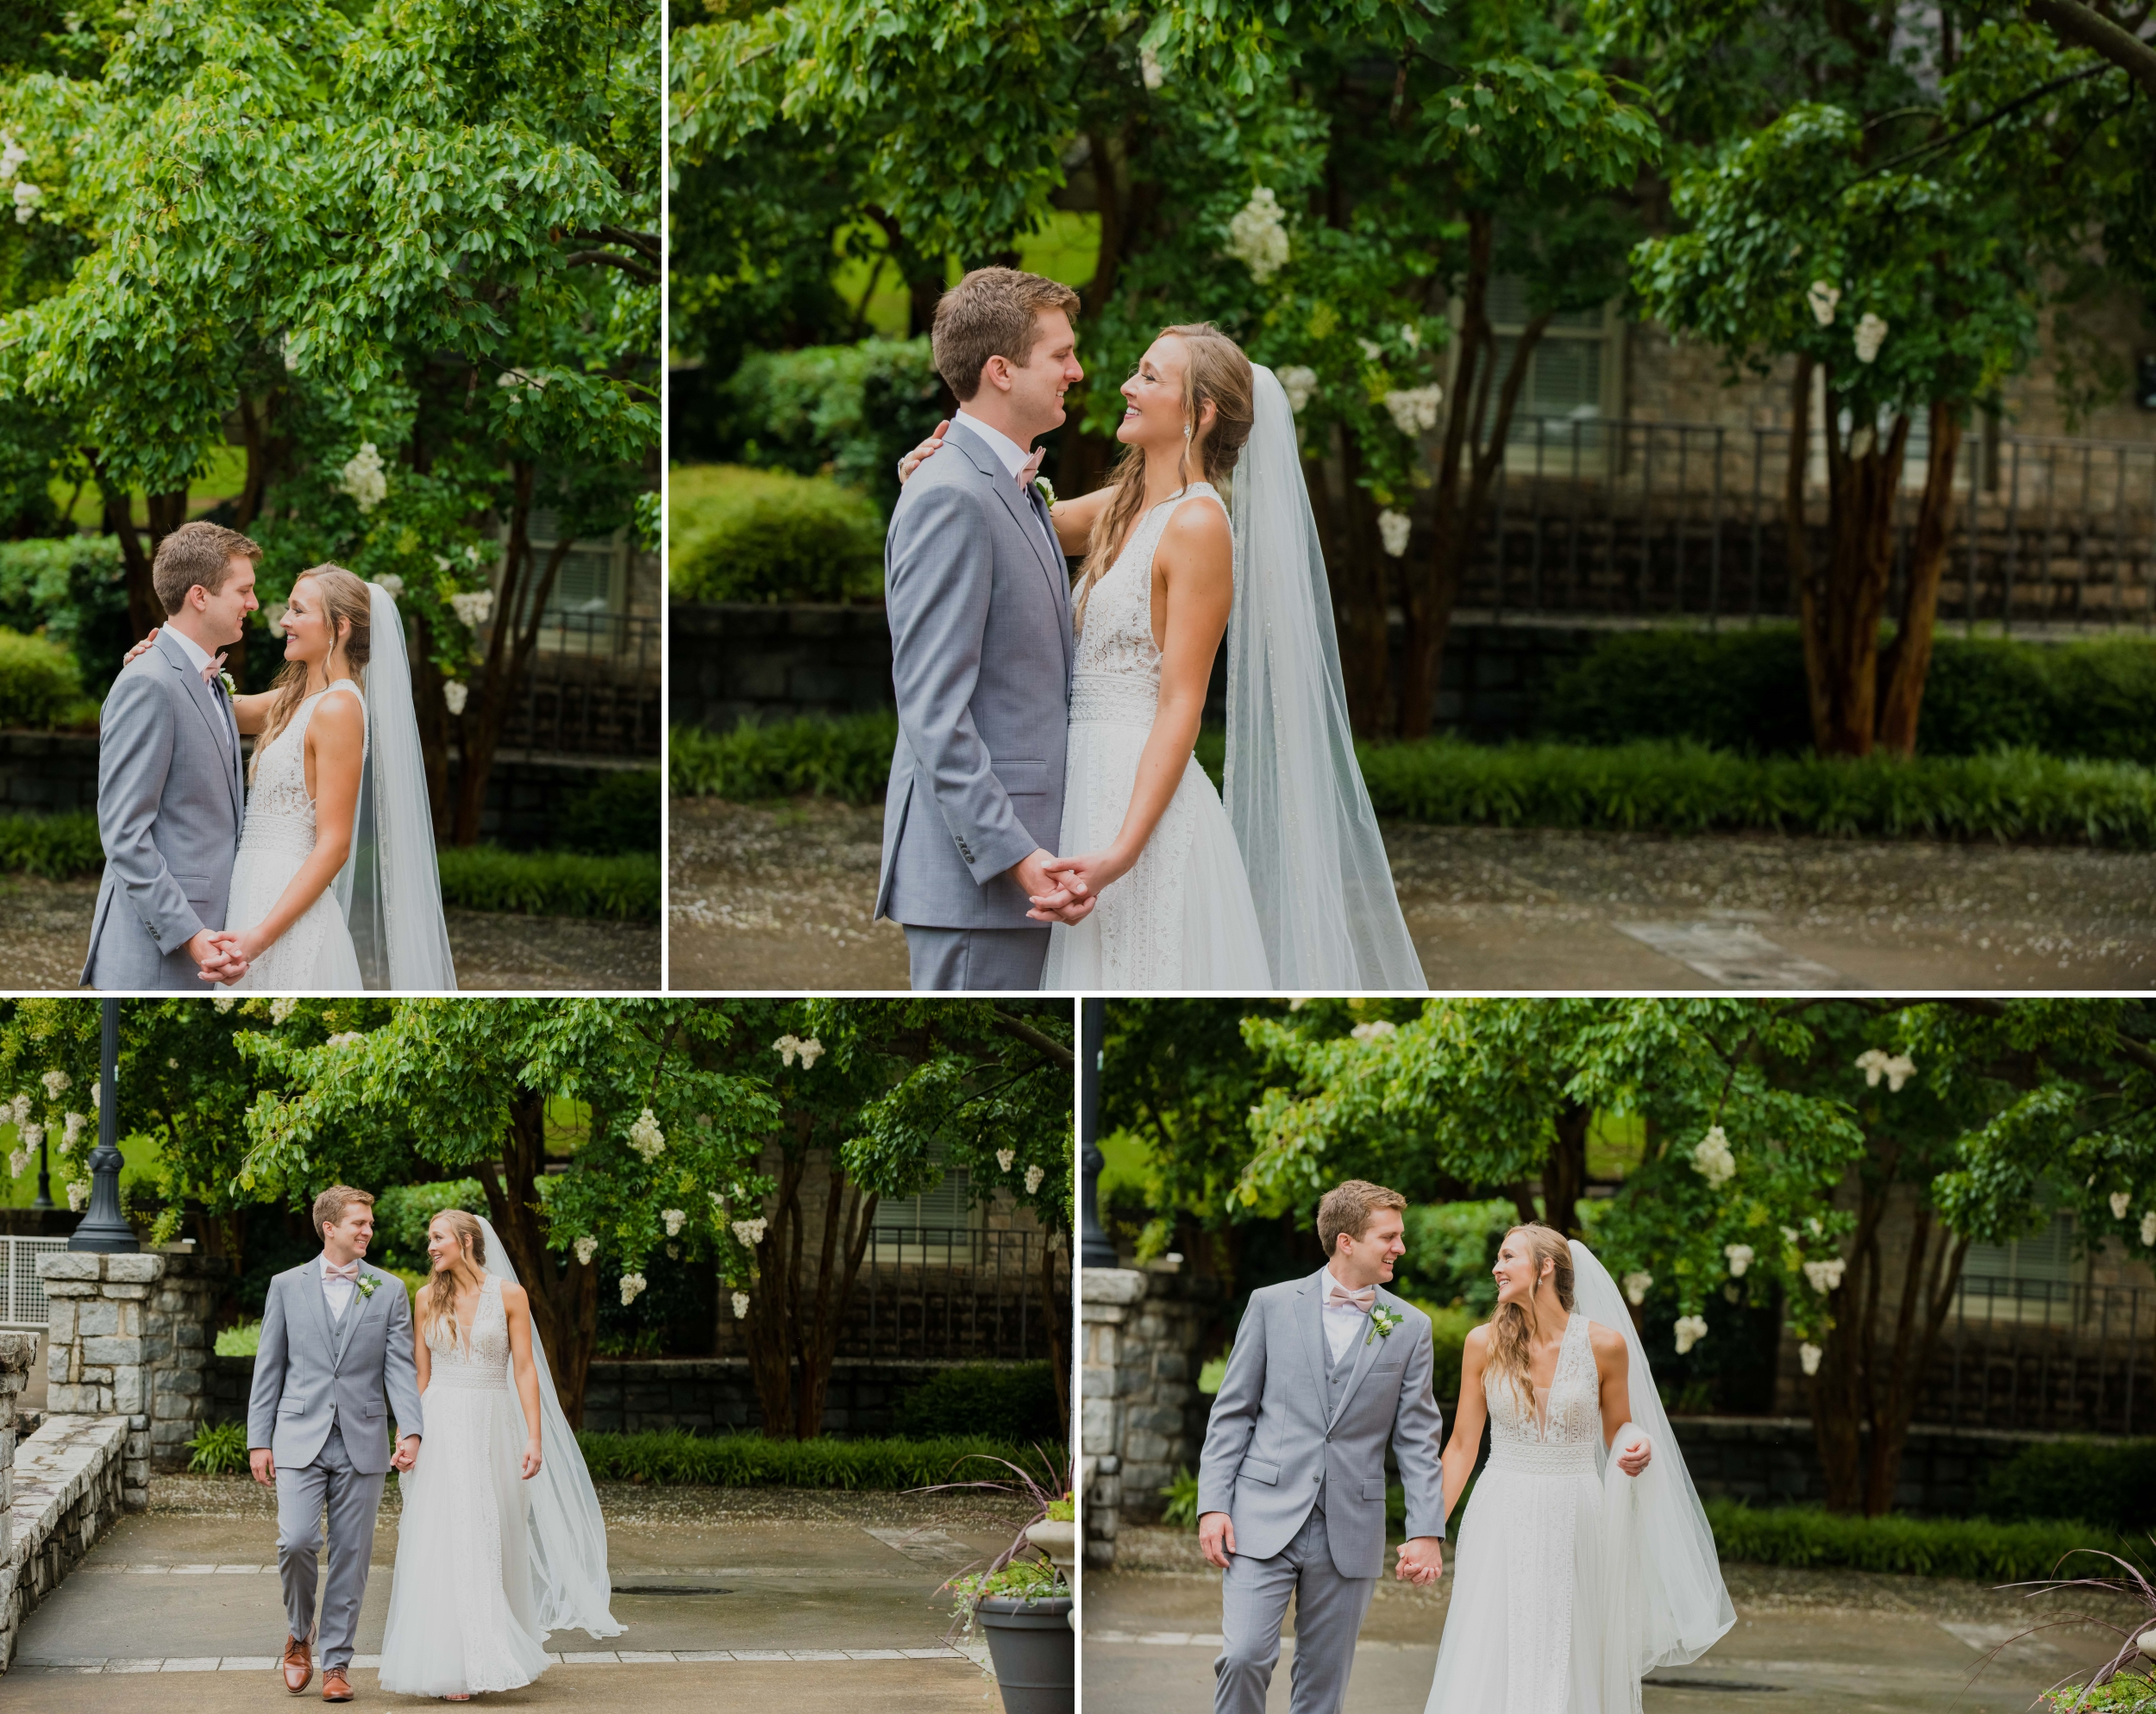 Wedding Piedmont Park - Magnolia Hall - Santy Martinez Photography 32.jpg